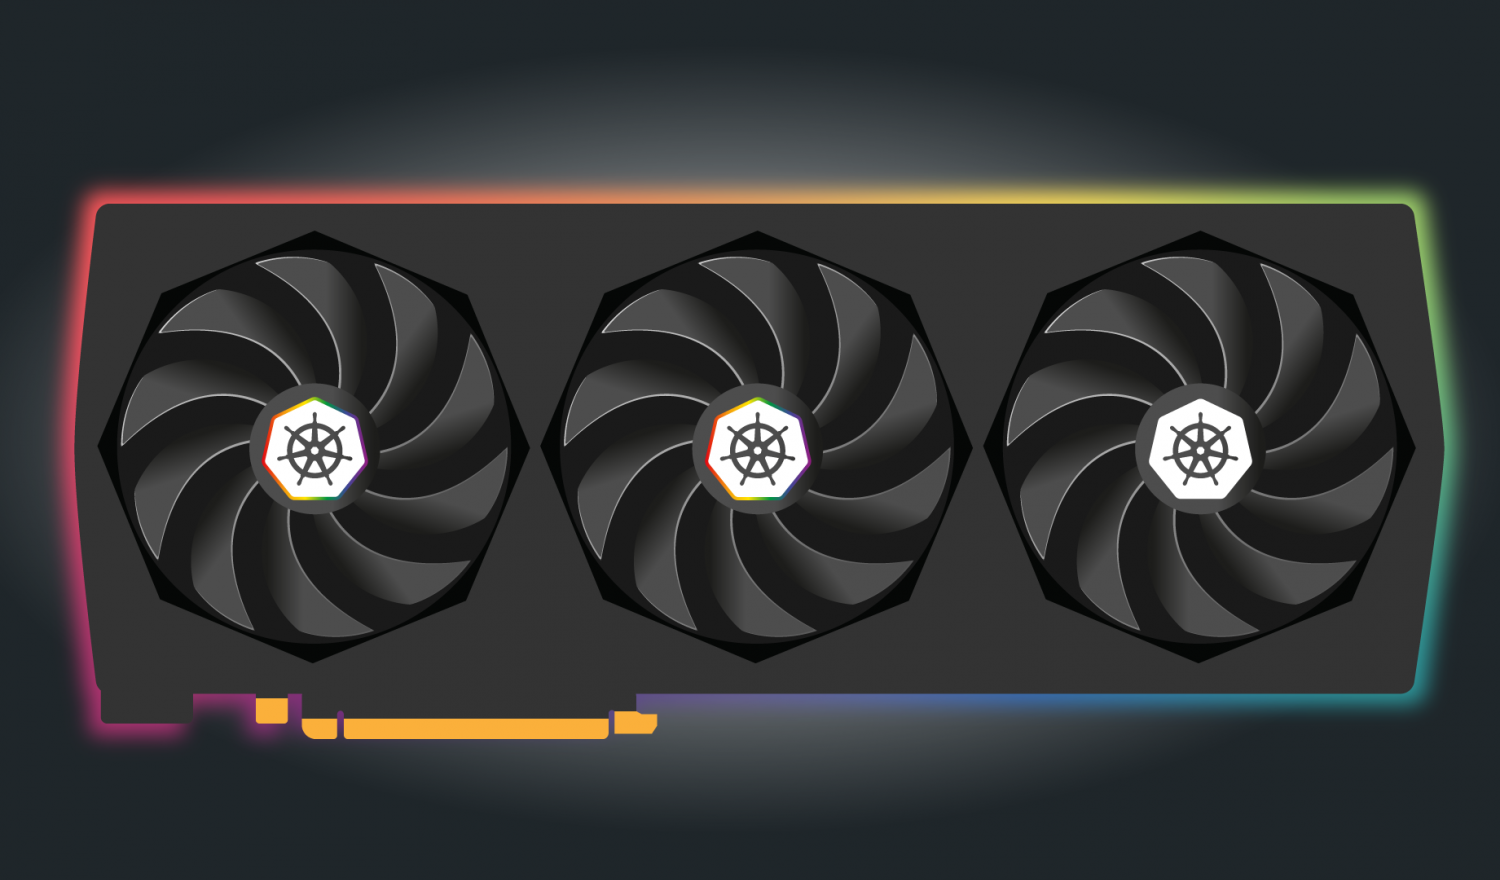 A graphics card with 2 active cores for machine learning with dask